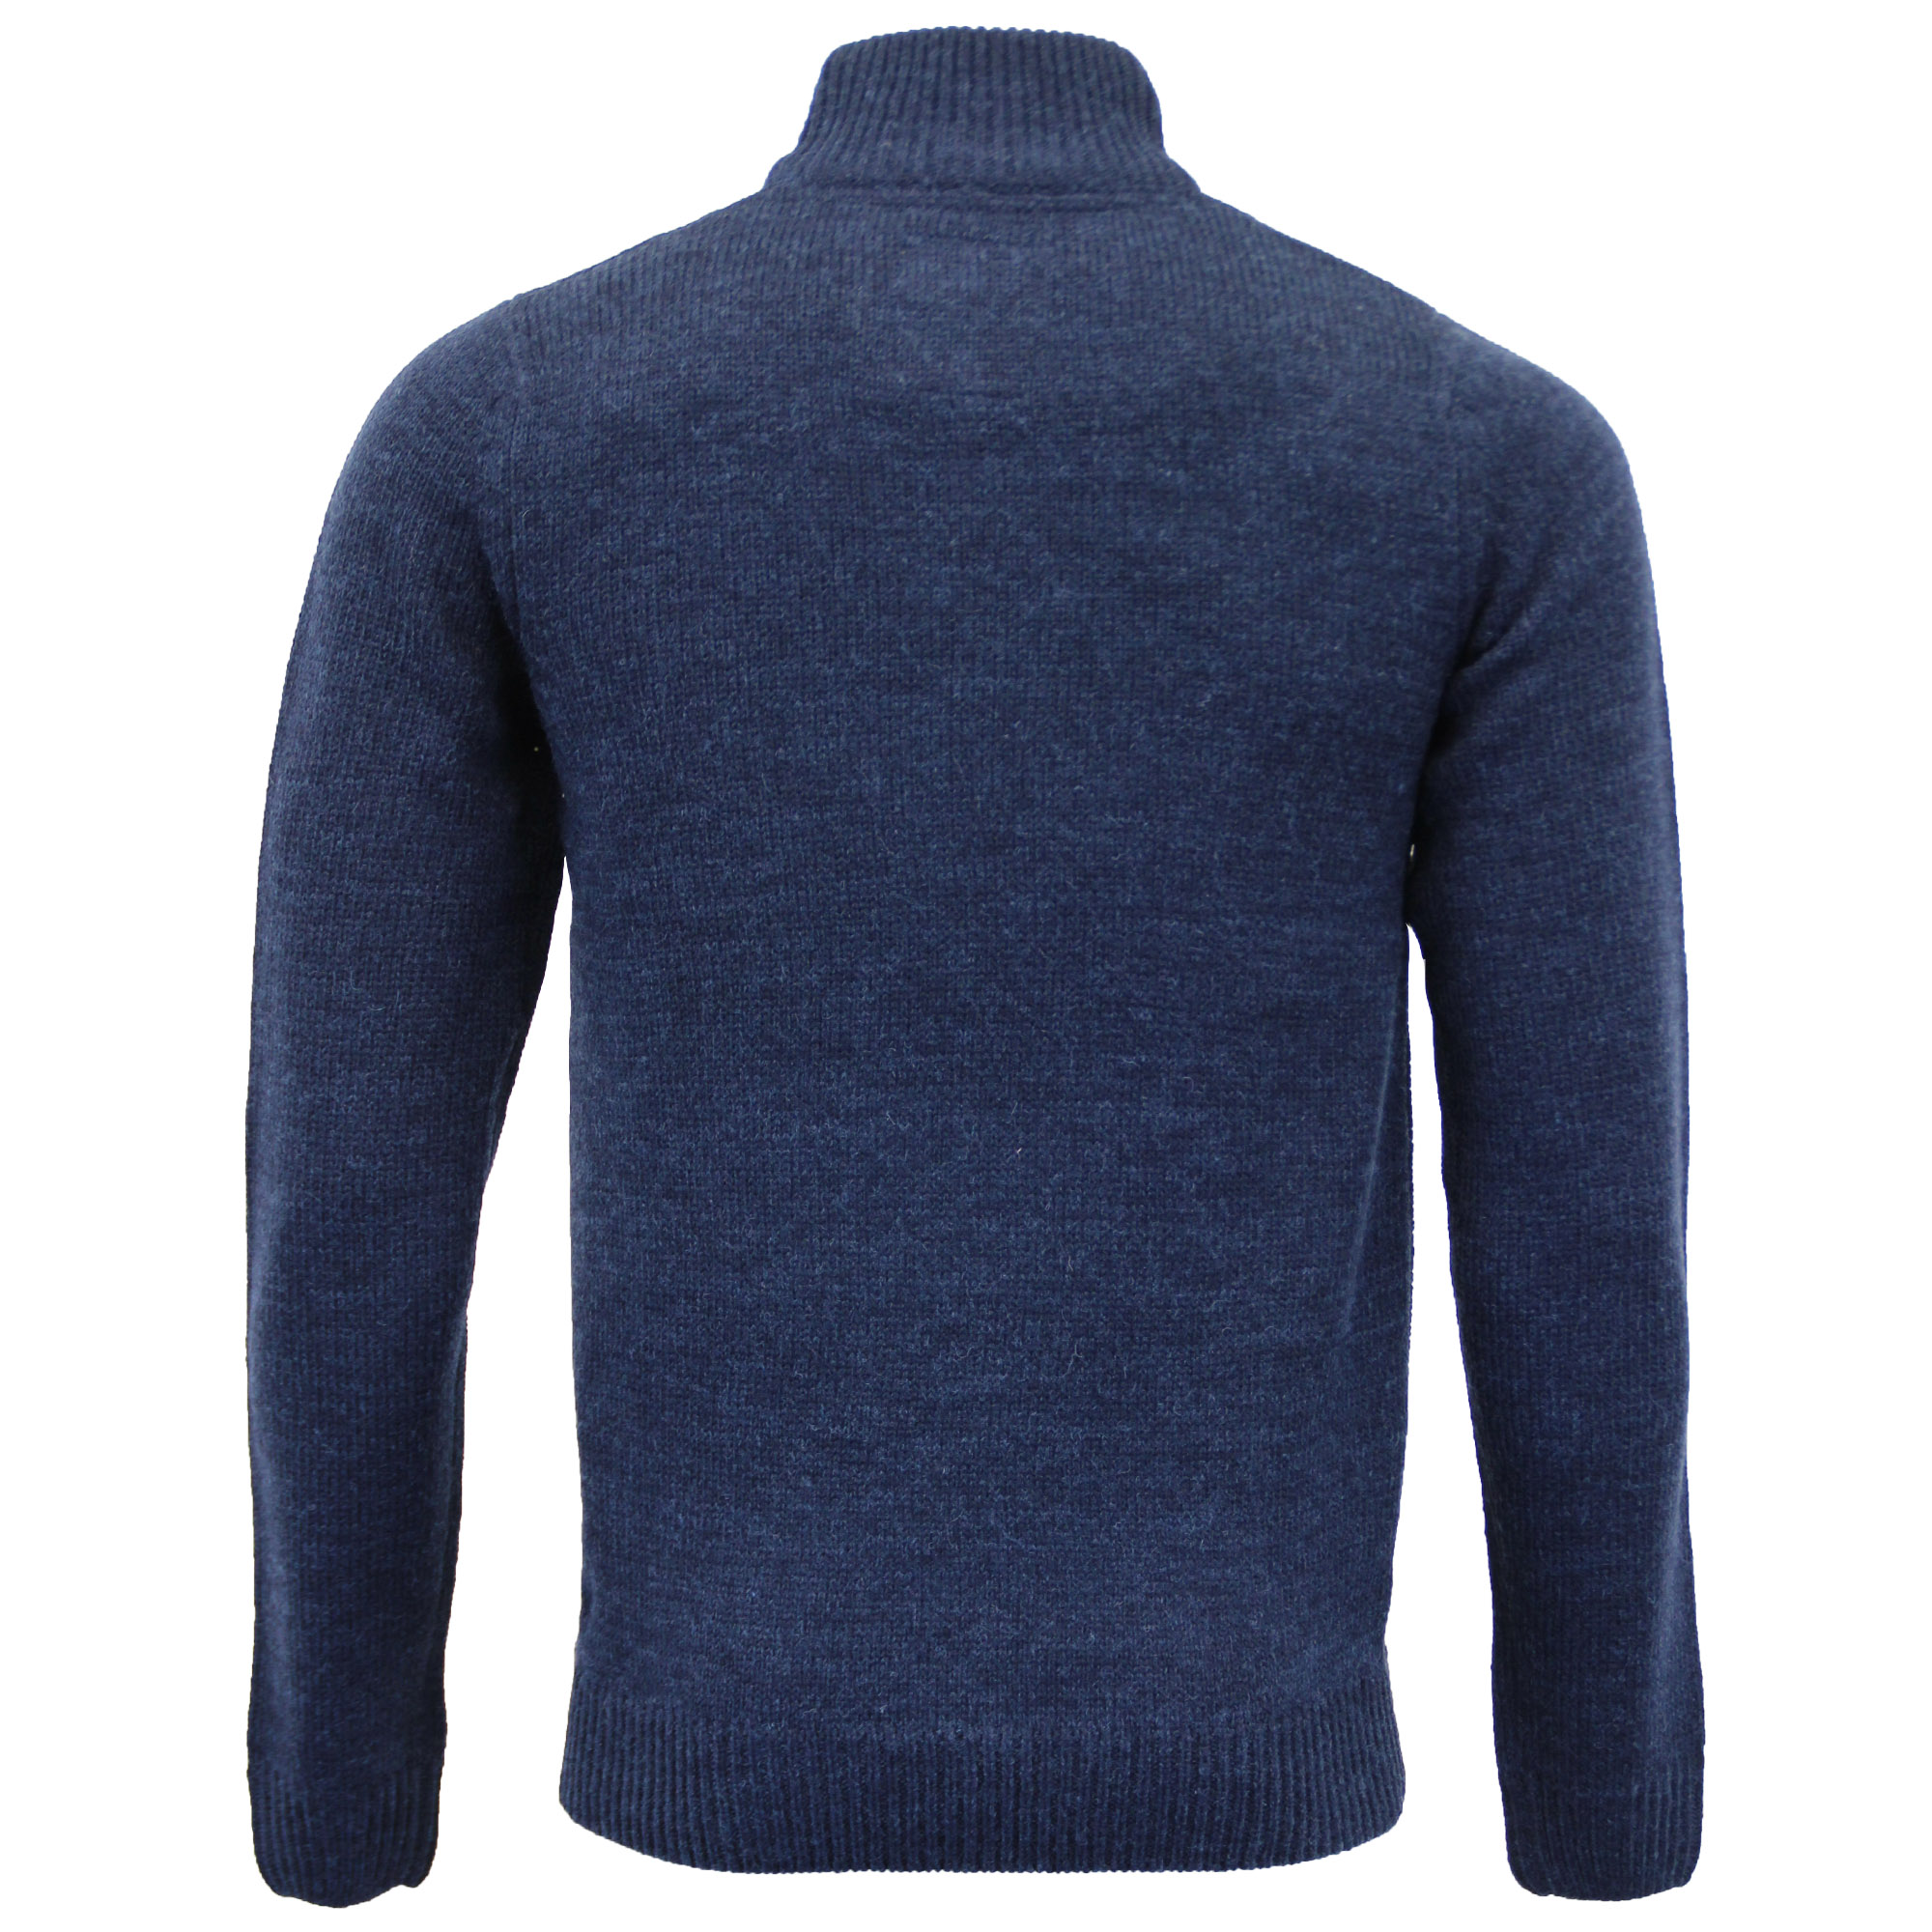 Mens-Wool-Mix-Jumper-Threadbare-Knitted-Sweater-Pullover-Top-Chunky-Zip-Winter thumbnail 24